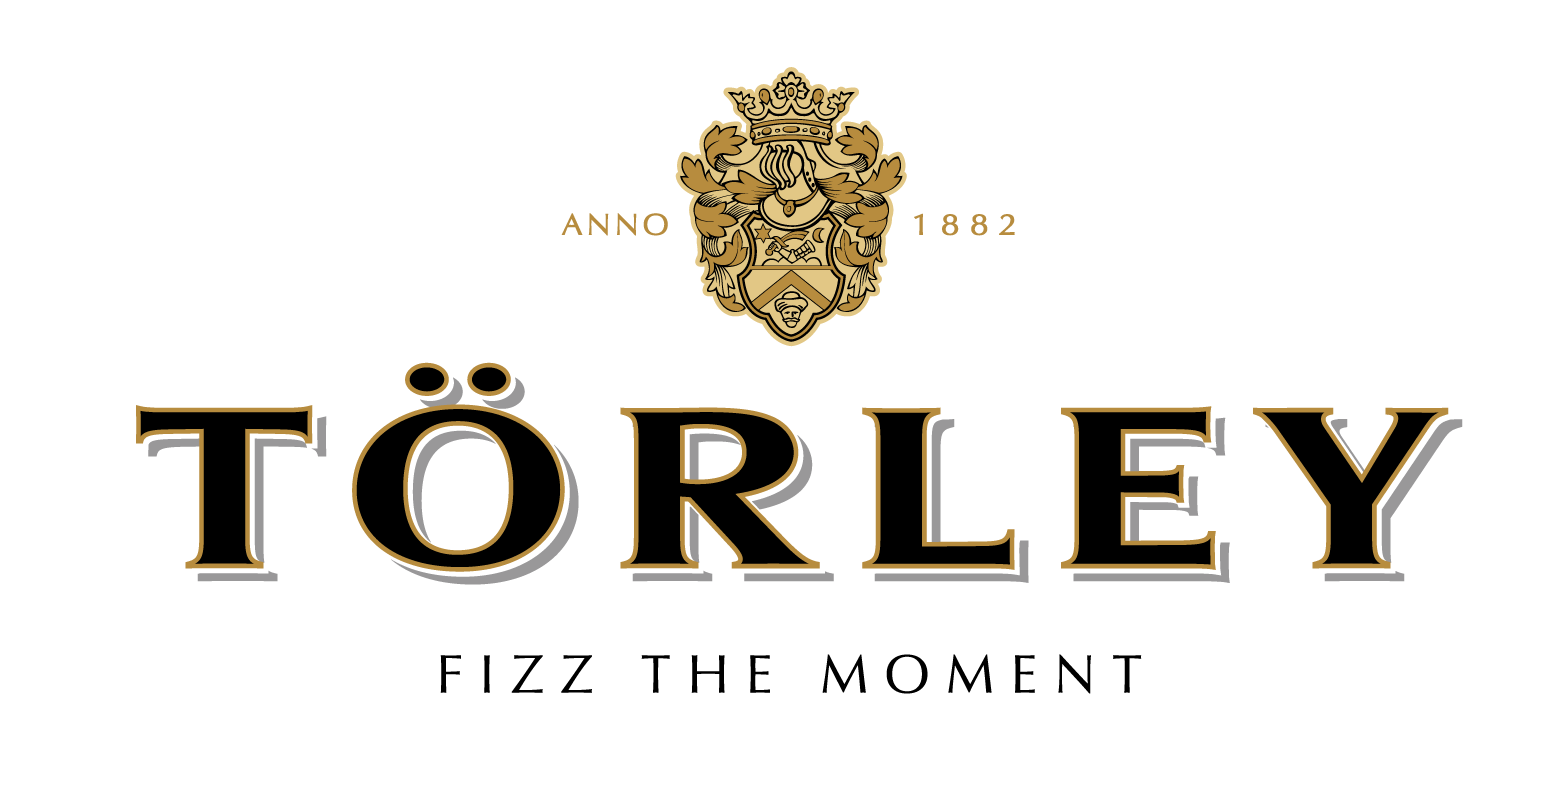 Törley Sparkling Wine Cellar Ltd.